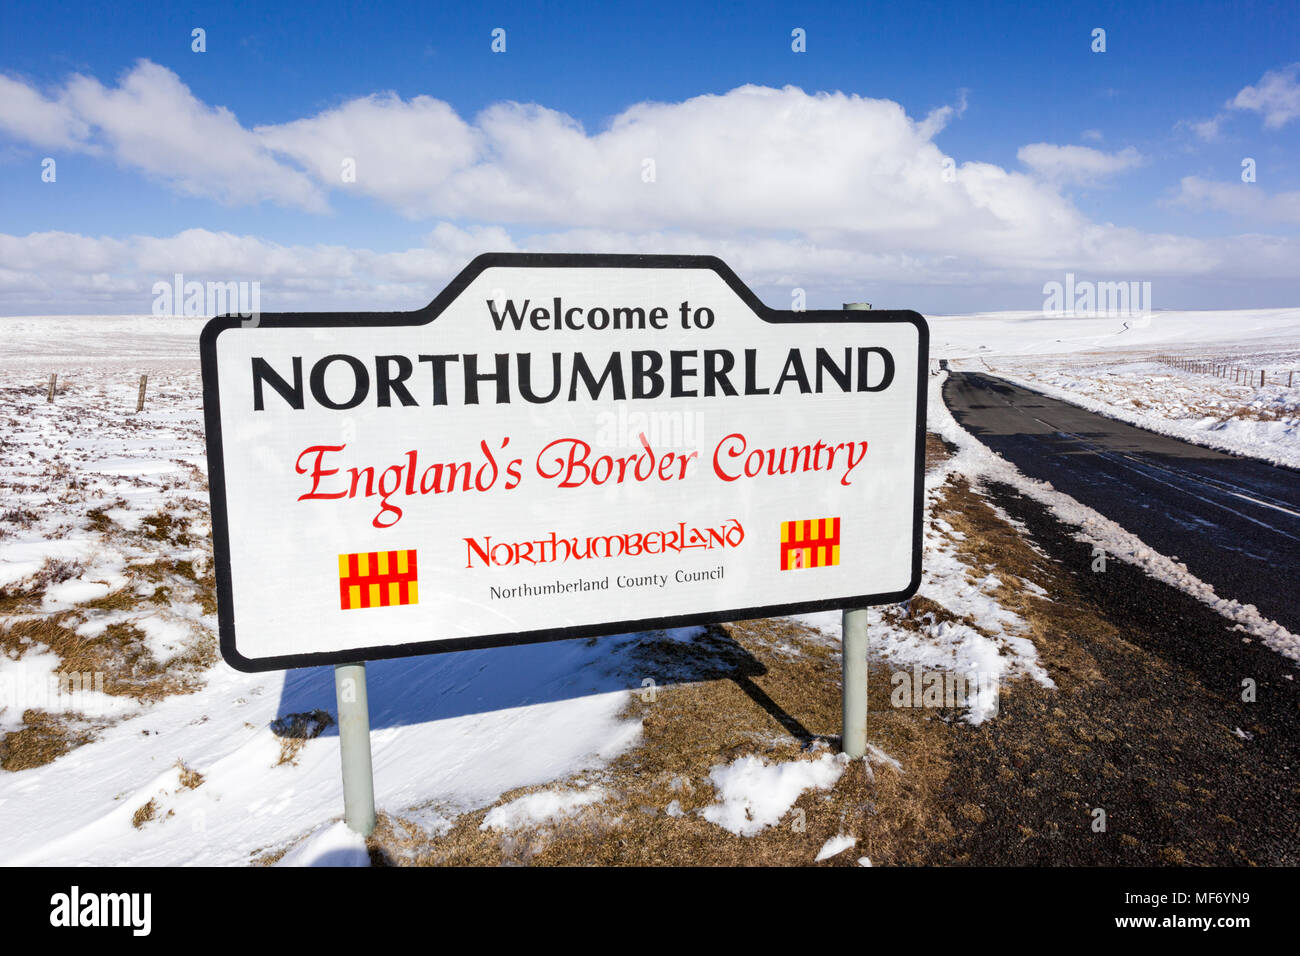 The Pennines in winter - A snowy landscape on the border between Cumbria and Northumberland near Nenthead UK - Stock Image